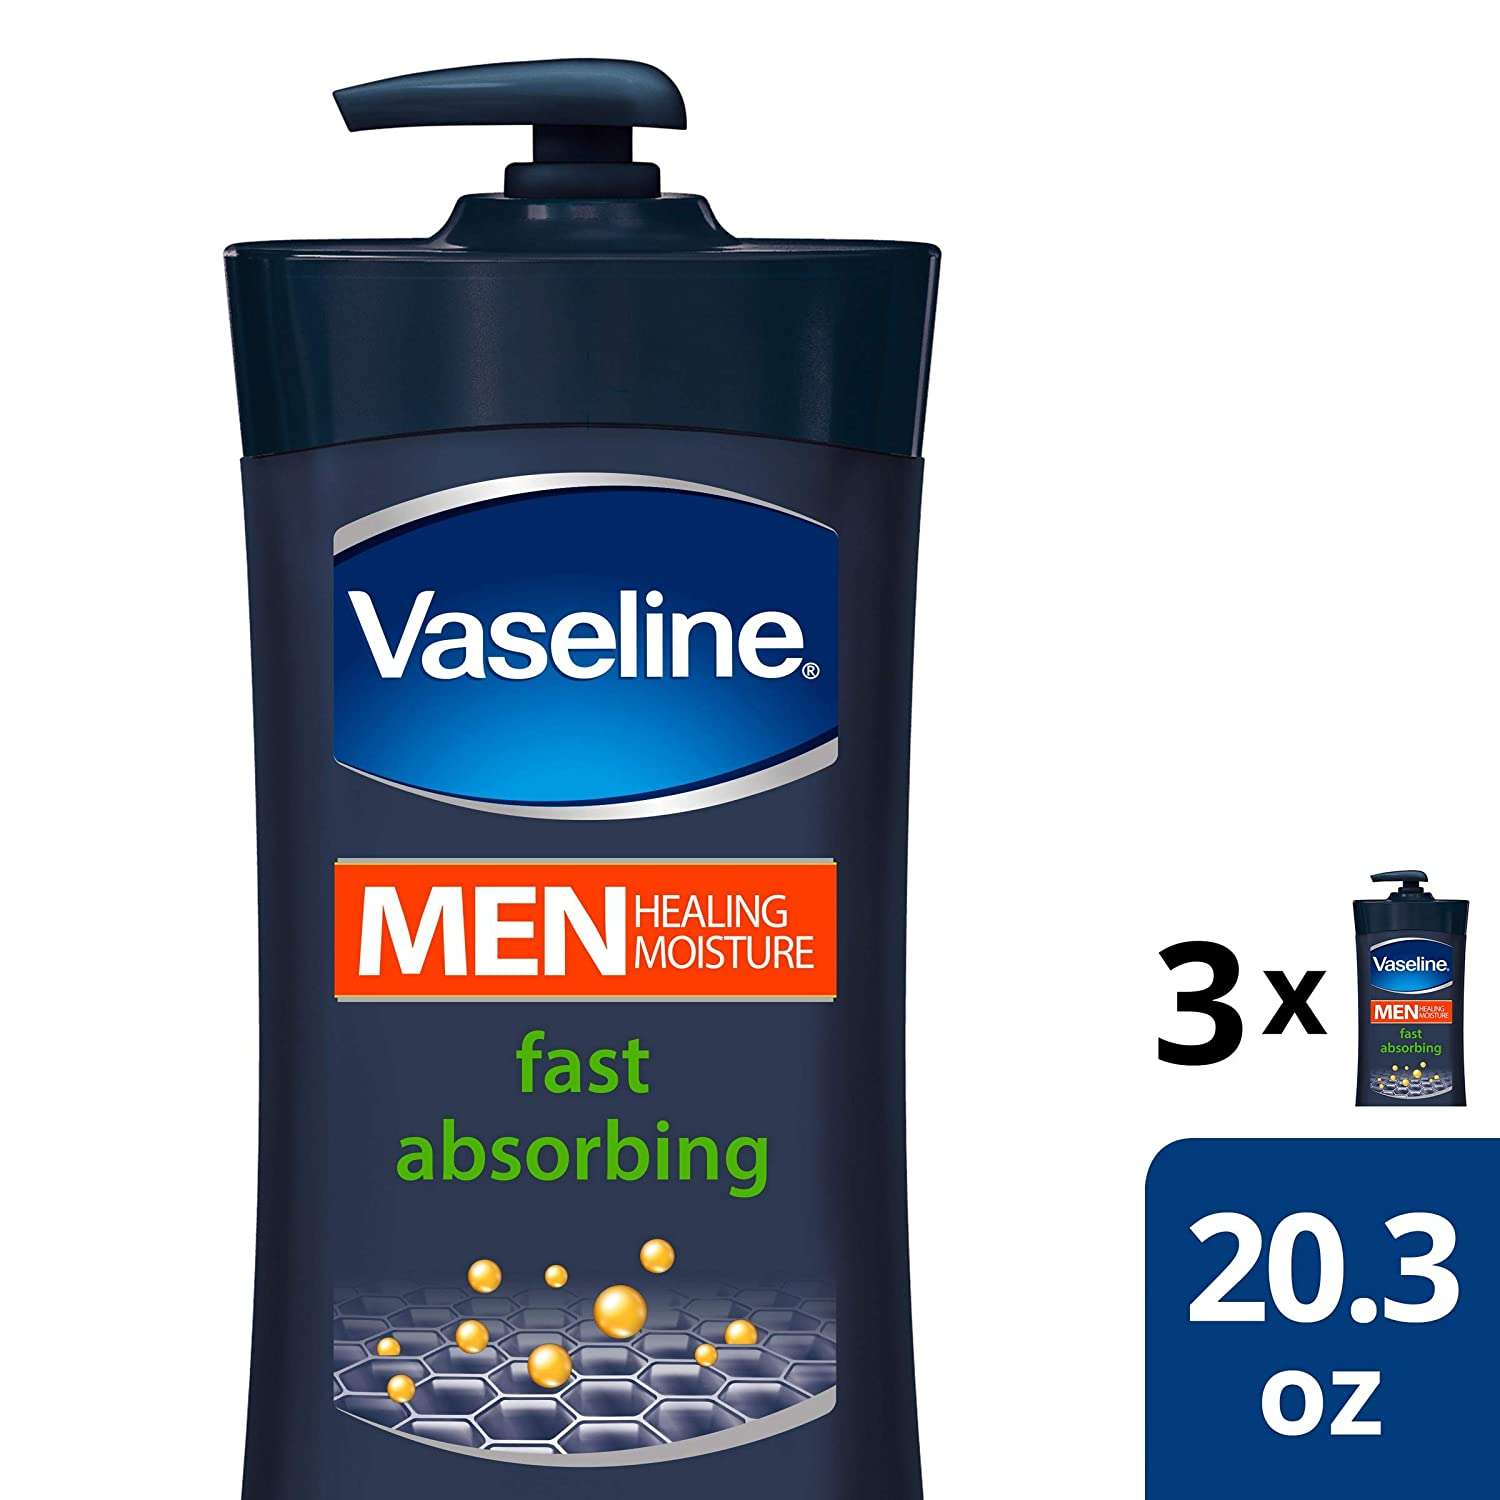 Vaseline Men Body Lotion Fast Absorbing Healing Lotion 20.3 oz 3 ct